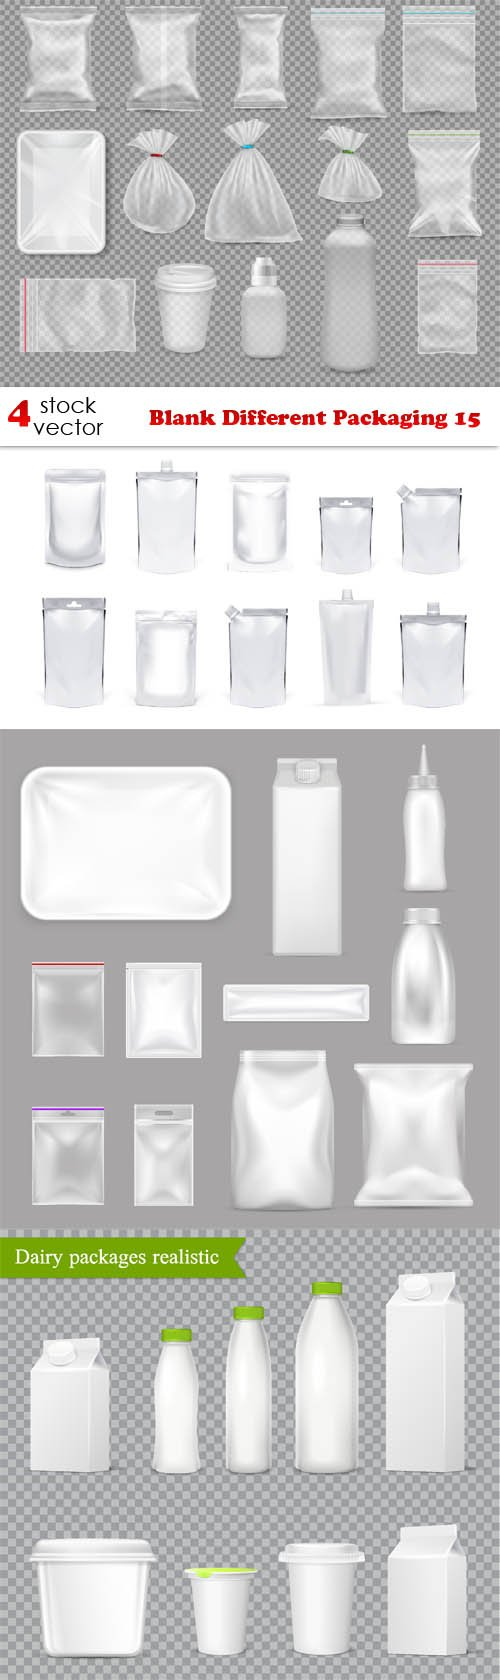 Vectors - Blank Different Packaging 15